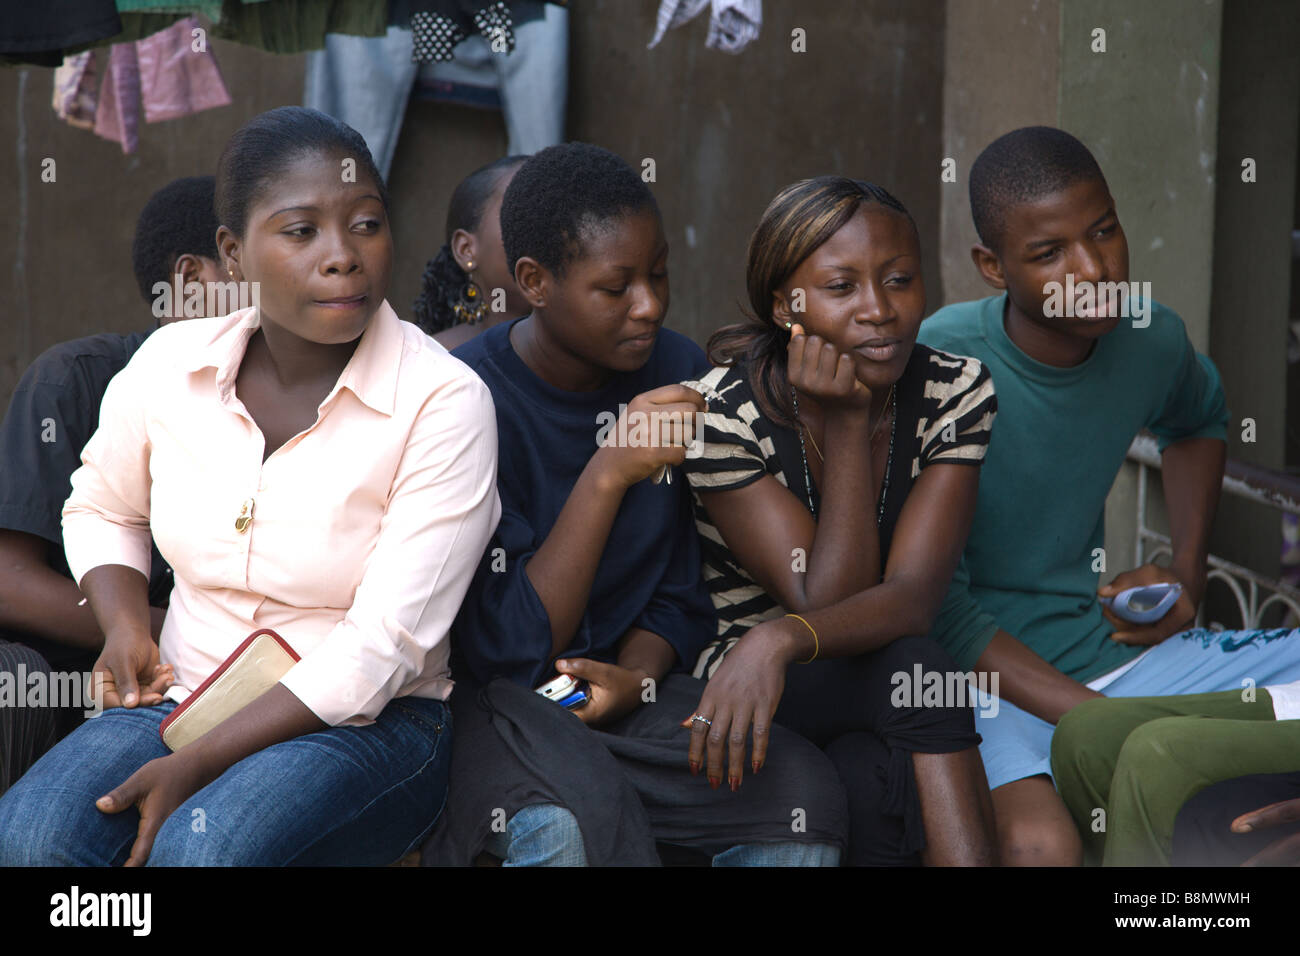 Women seeking men in nigeria